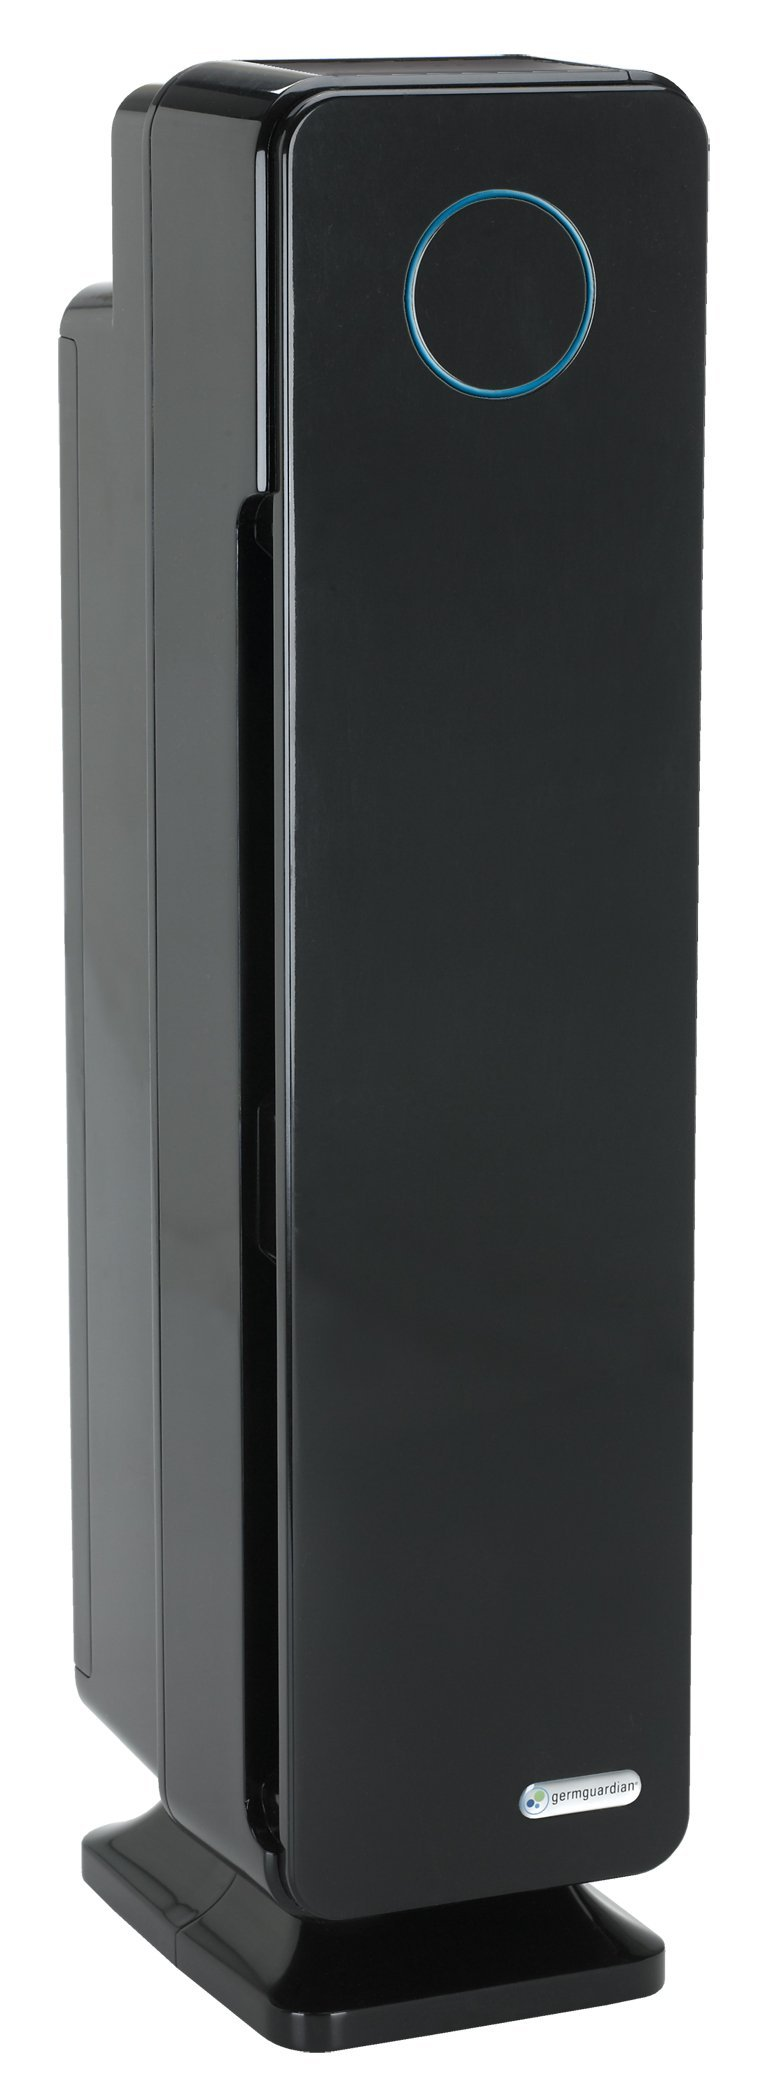 GermGuardian AC5350B Elite 4-in-1 Air Purifier with True HEPA Filter, UV-C Sanitizer, Captures Allergens, Smoke, Odors, Mold, Dust, Germs, Pets, Smokers, 28-Inch Germ Guardian Air Purifier by Guardian Technologies (Image #11)